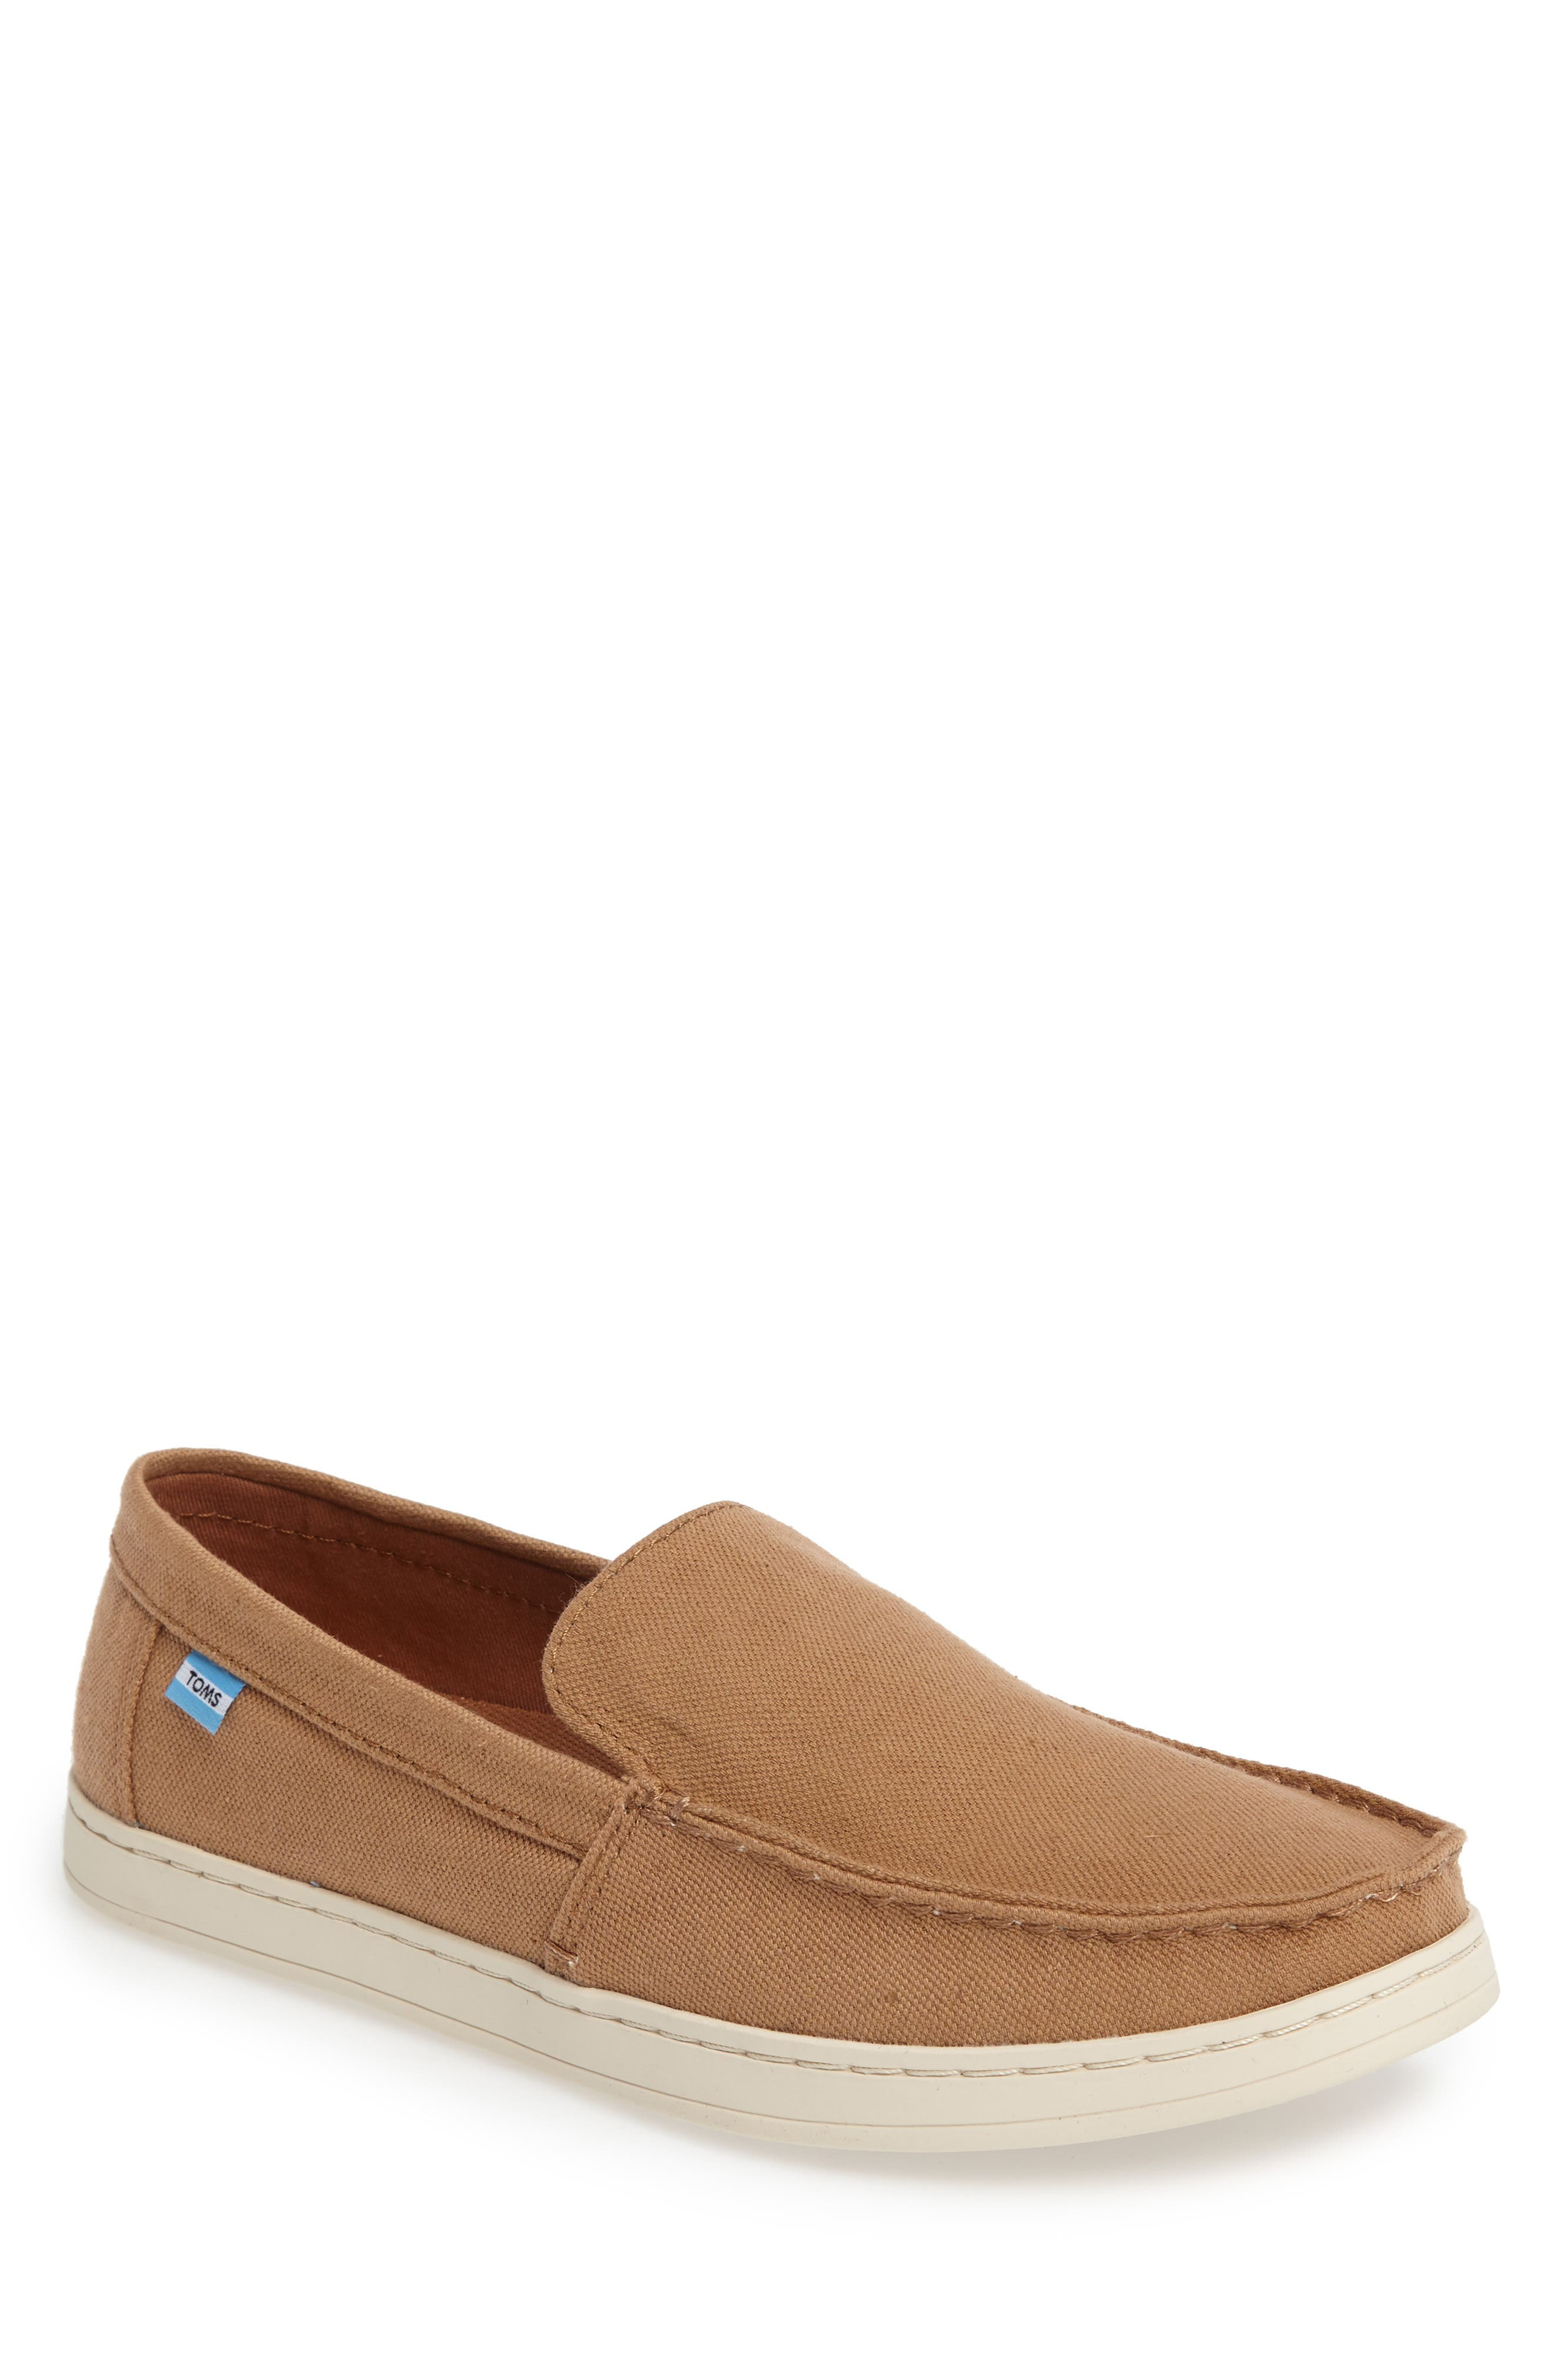 Aiden Slip-On Loafer,                             Main thumbnail 1, color,                             Toffee